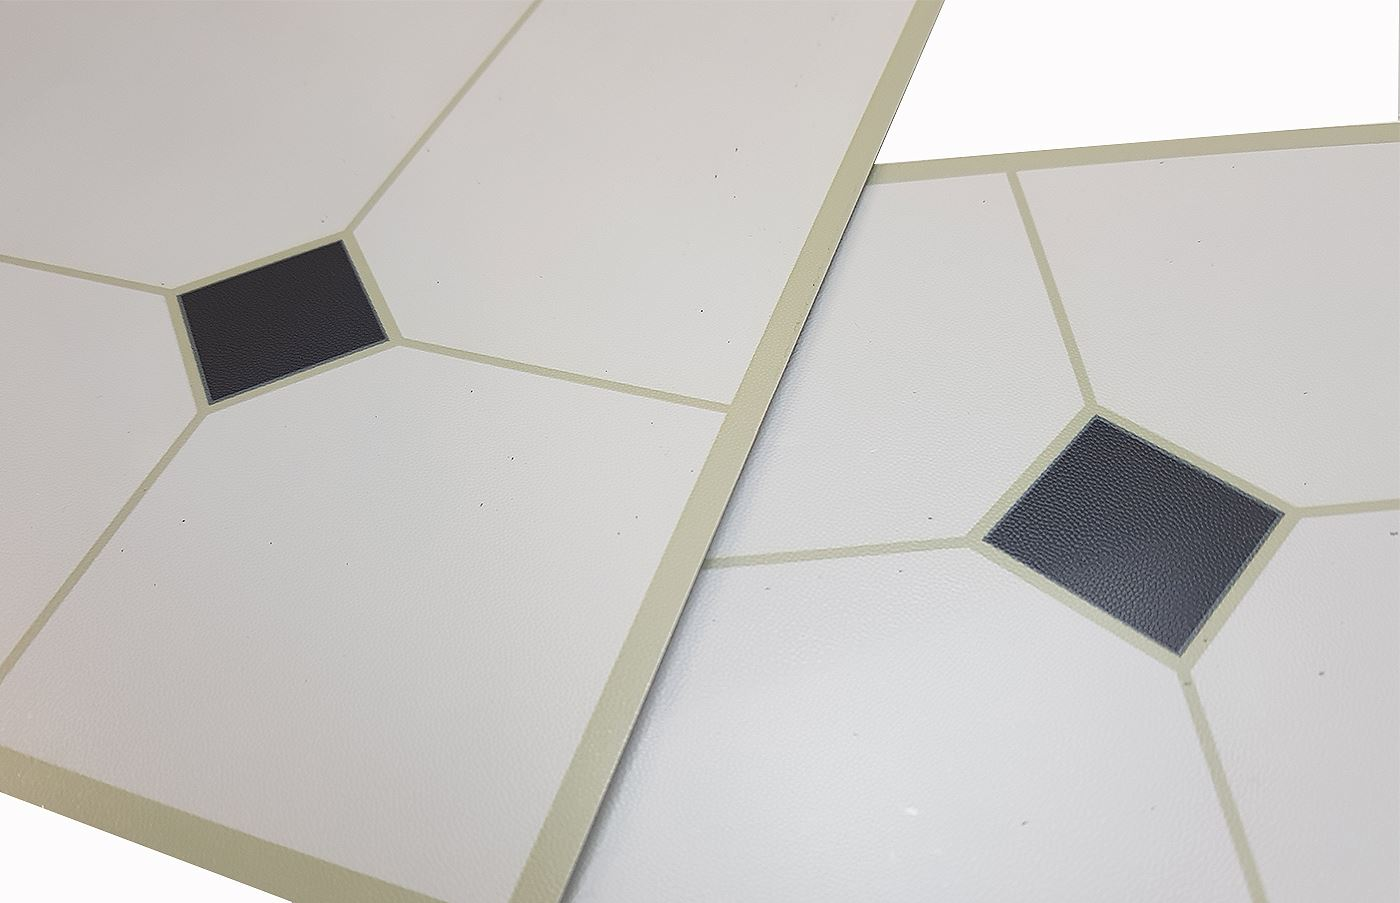 Floor Tiles Self Adhesive Grey Off White Black Vinyl ...